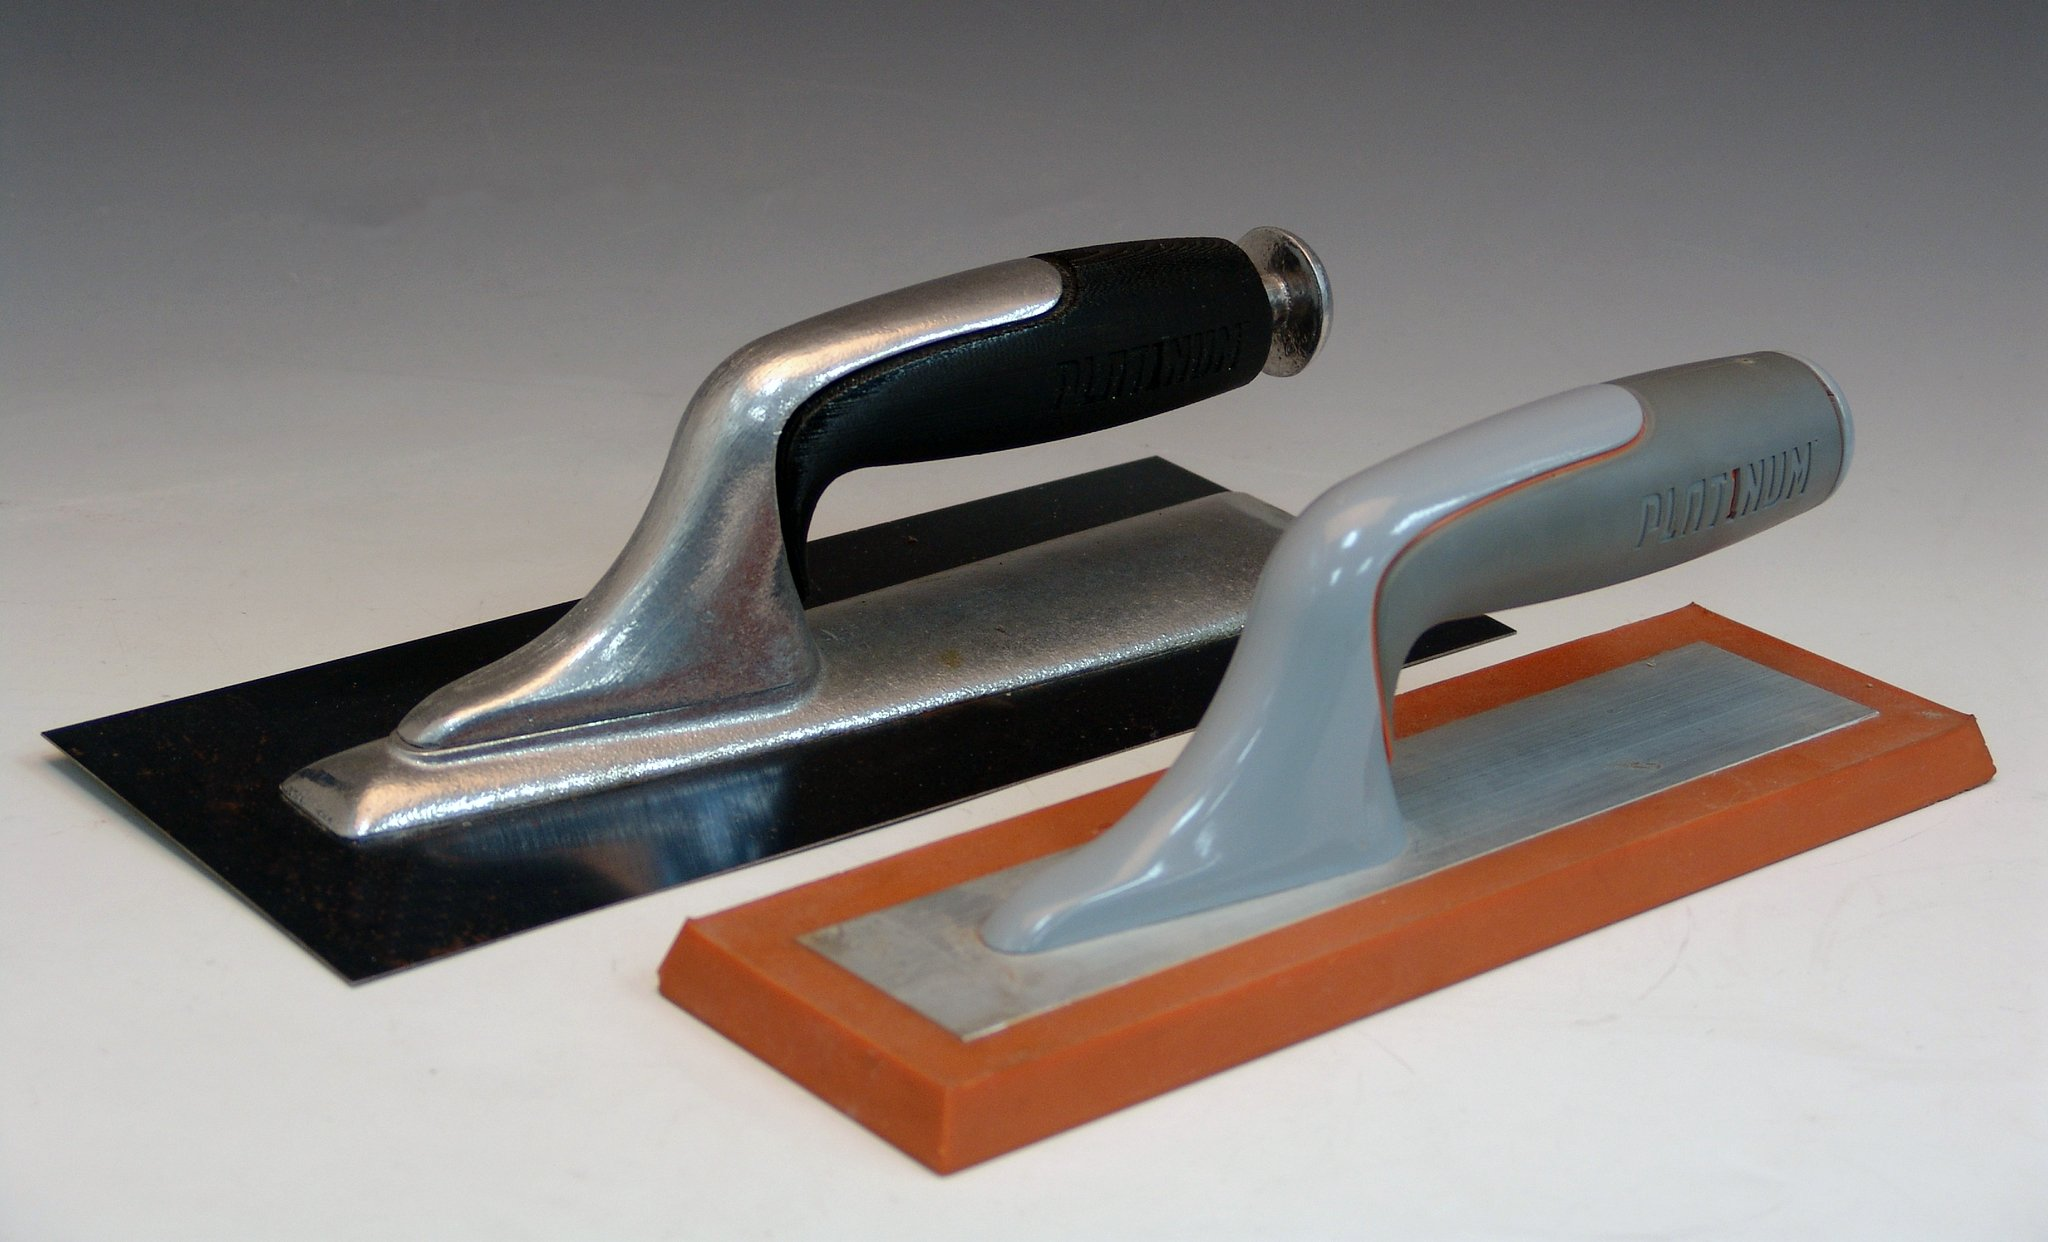 construction tool development, hand tool prototypes, cement tool design